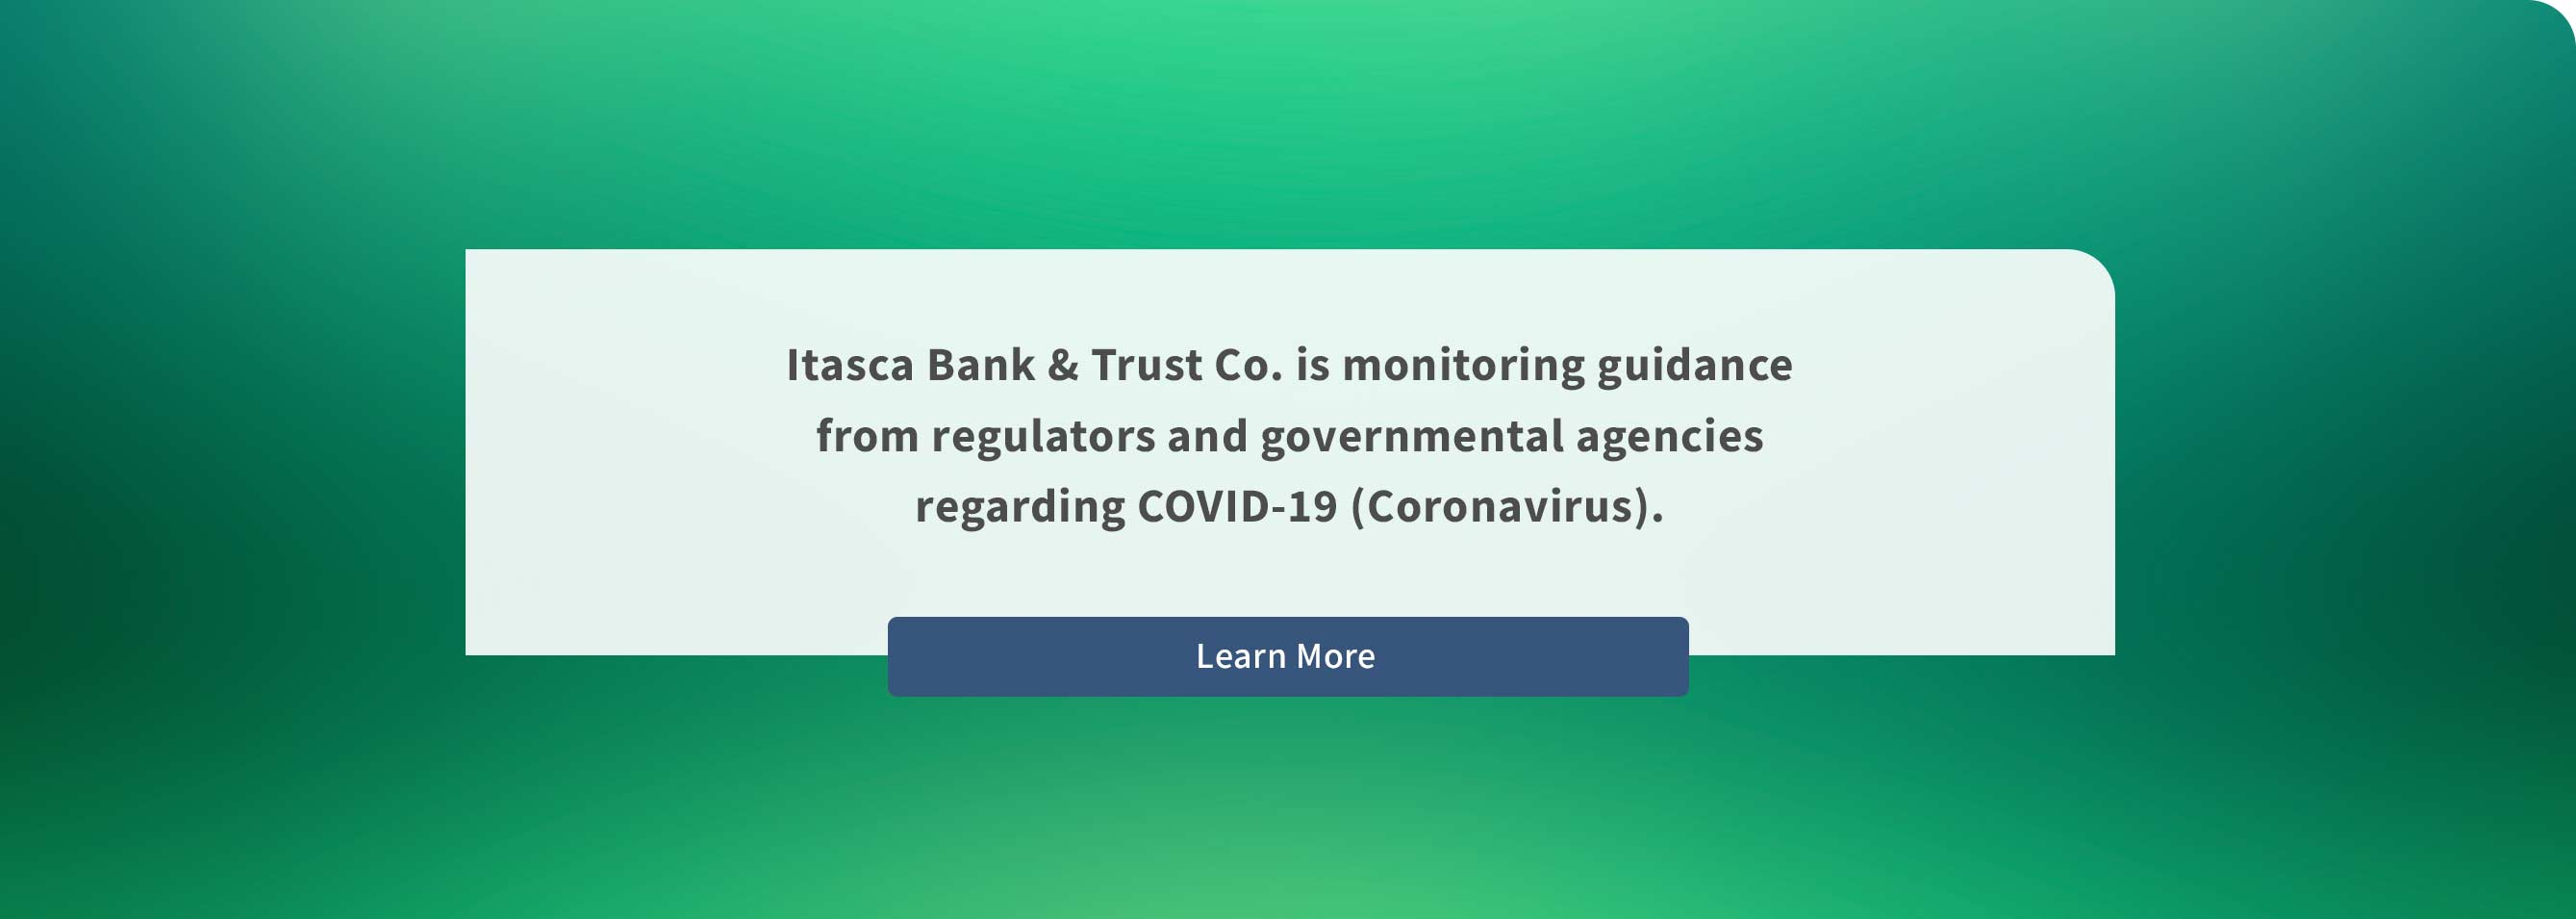 Itasca Bank & Trust Co.is monitoring guidance from regulators and governmental agencies regarding COVID-19 (Coronavirus).